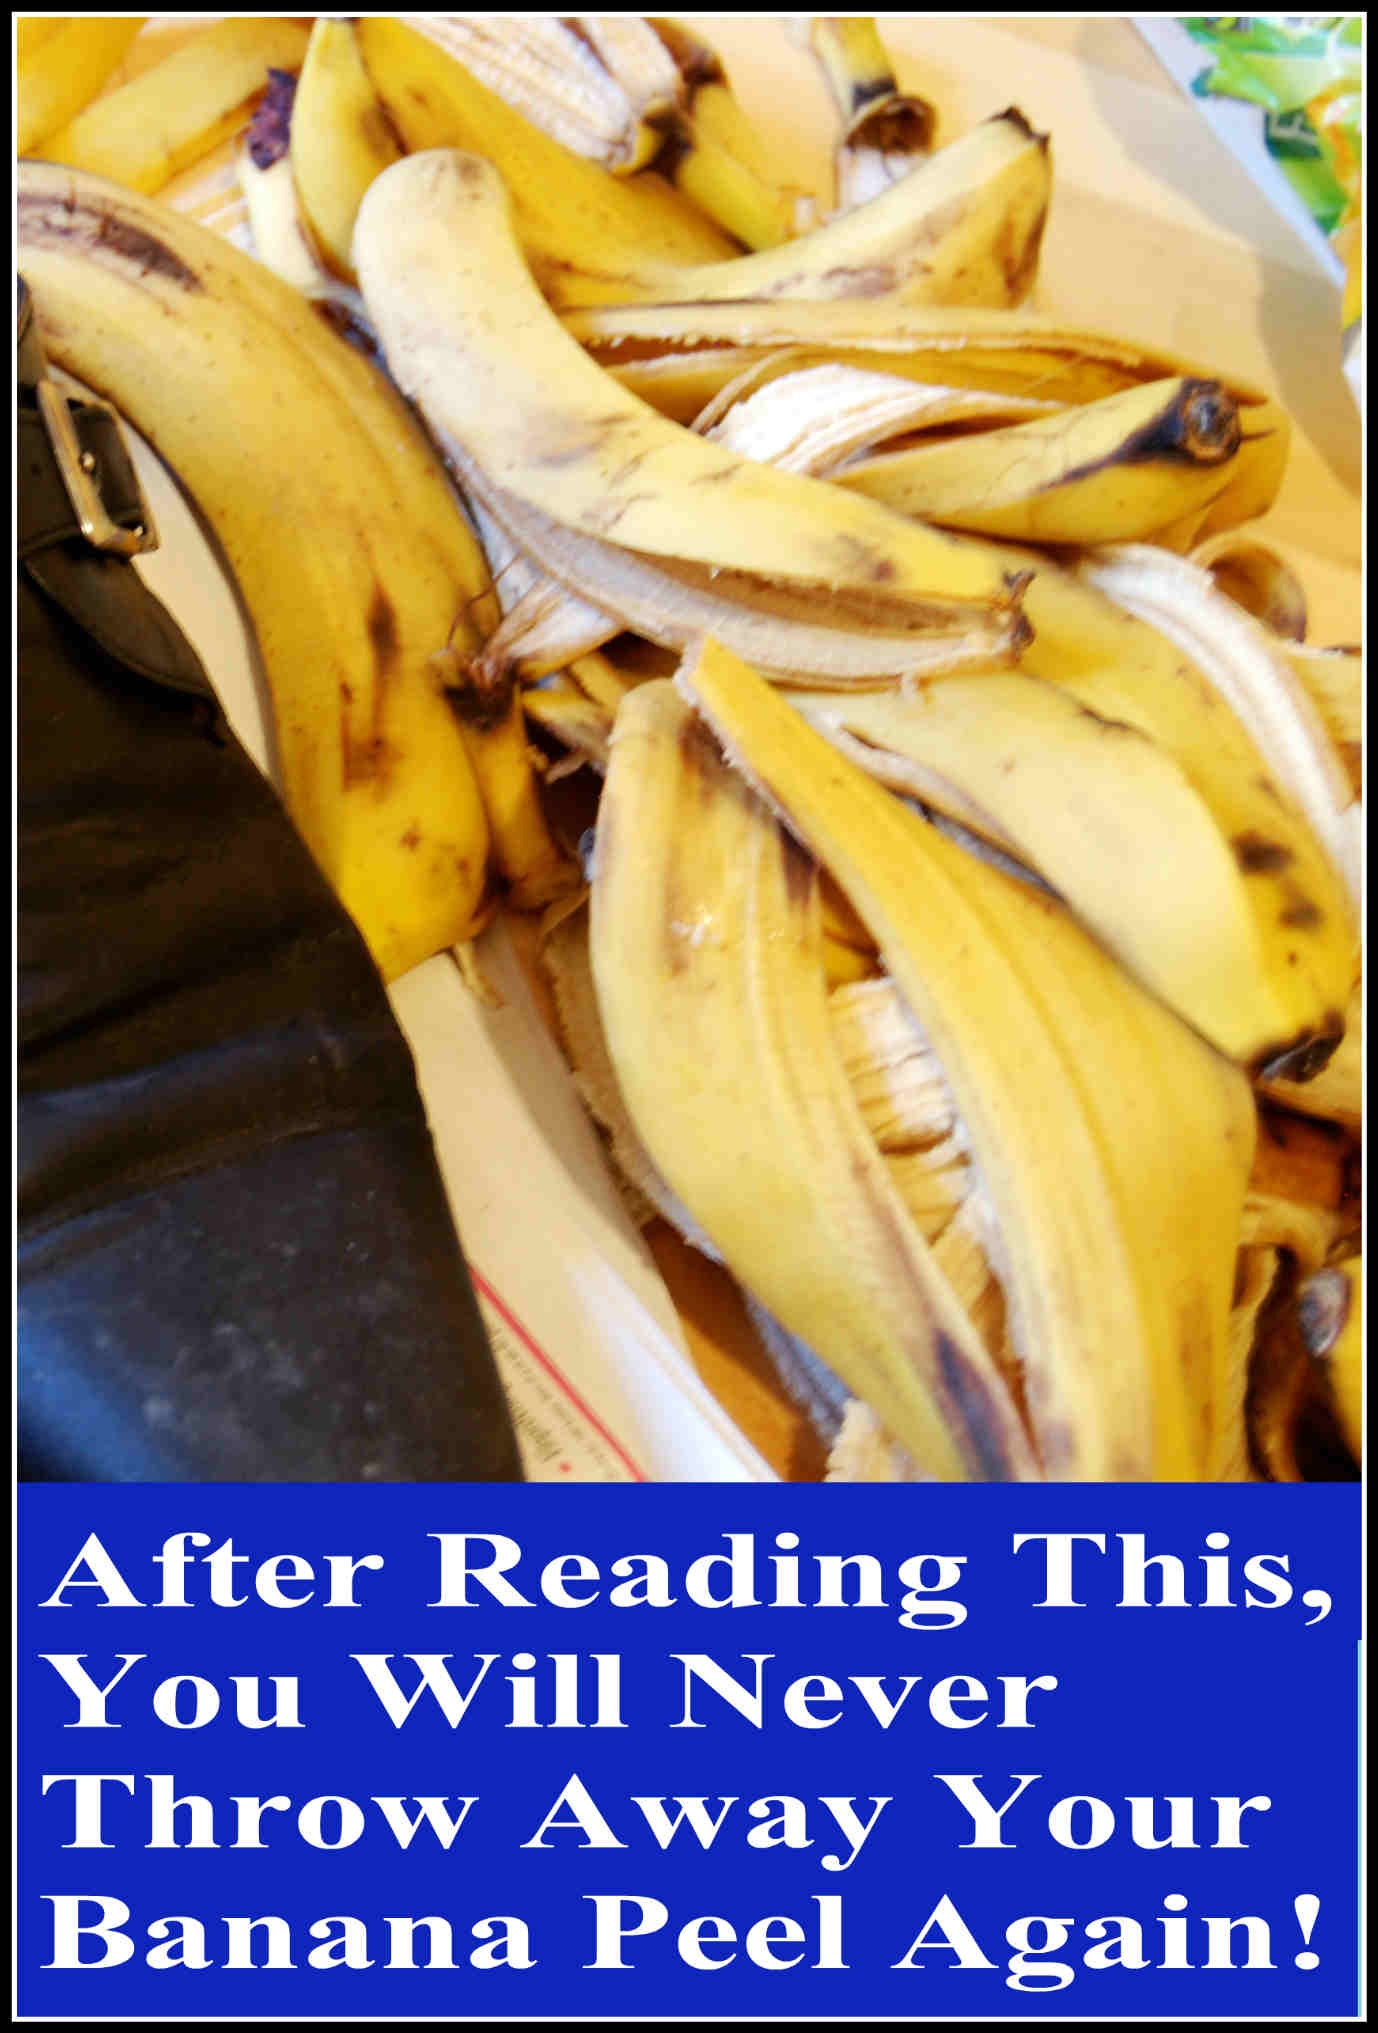 After Reading This, You Will Never Throw Away Your Banana Peel Again!